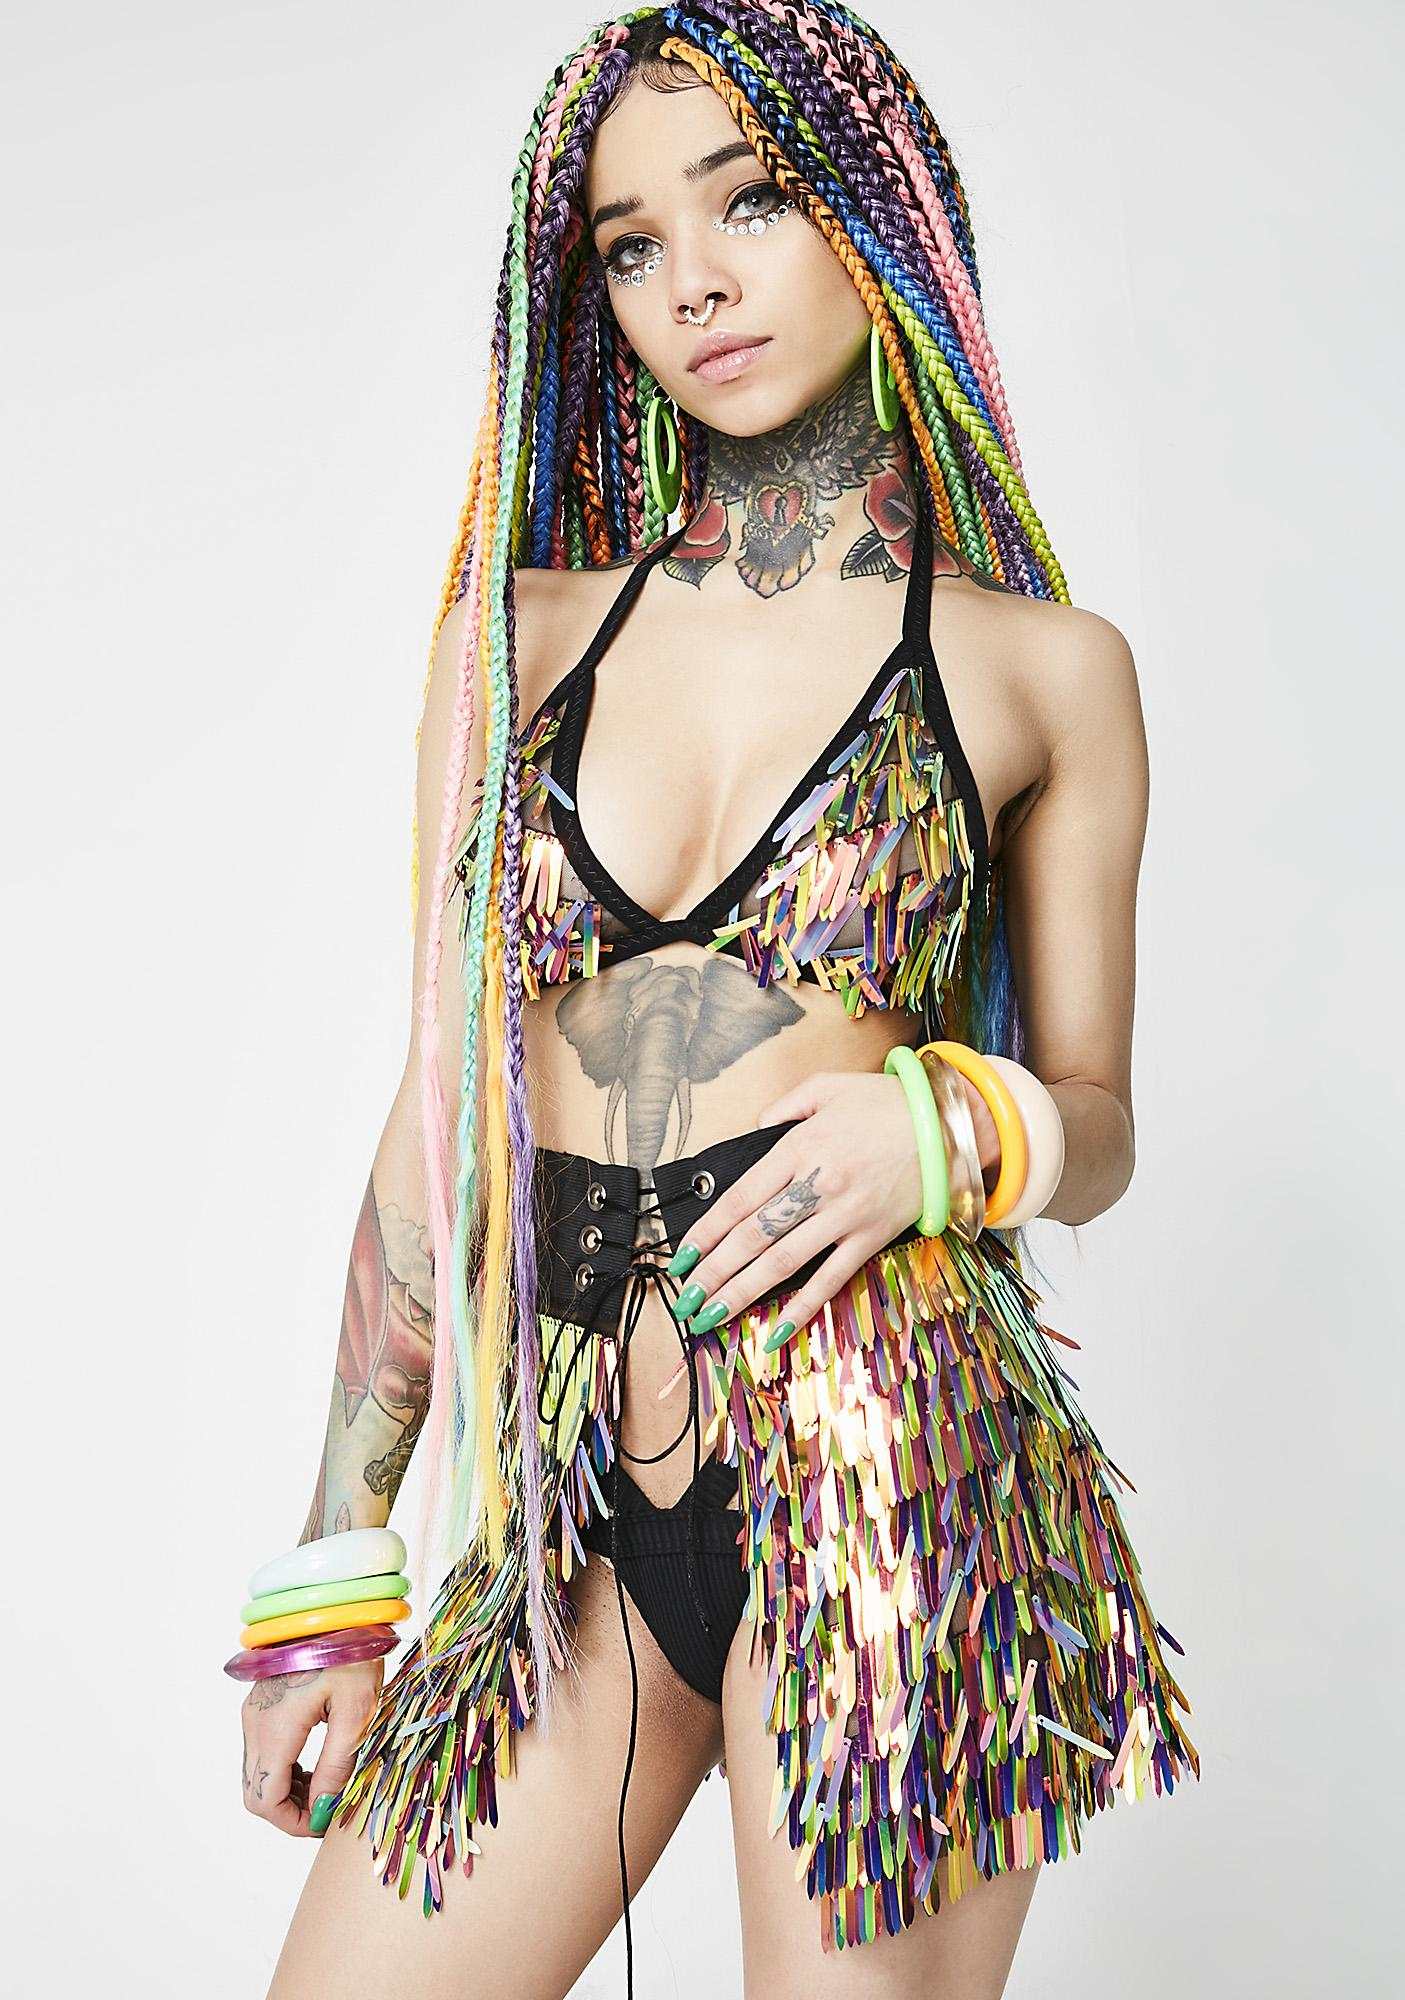 The Lyte Couture Party Monster Skirt